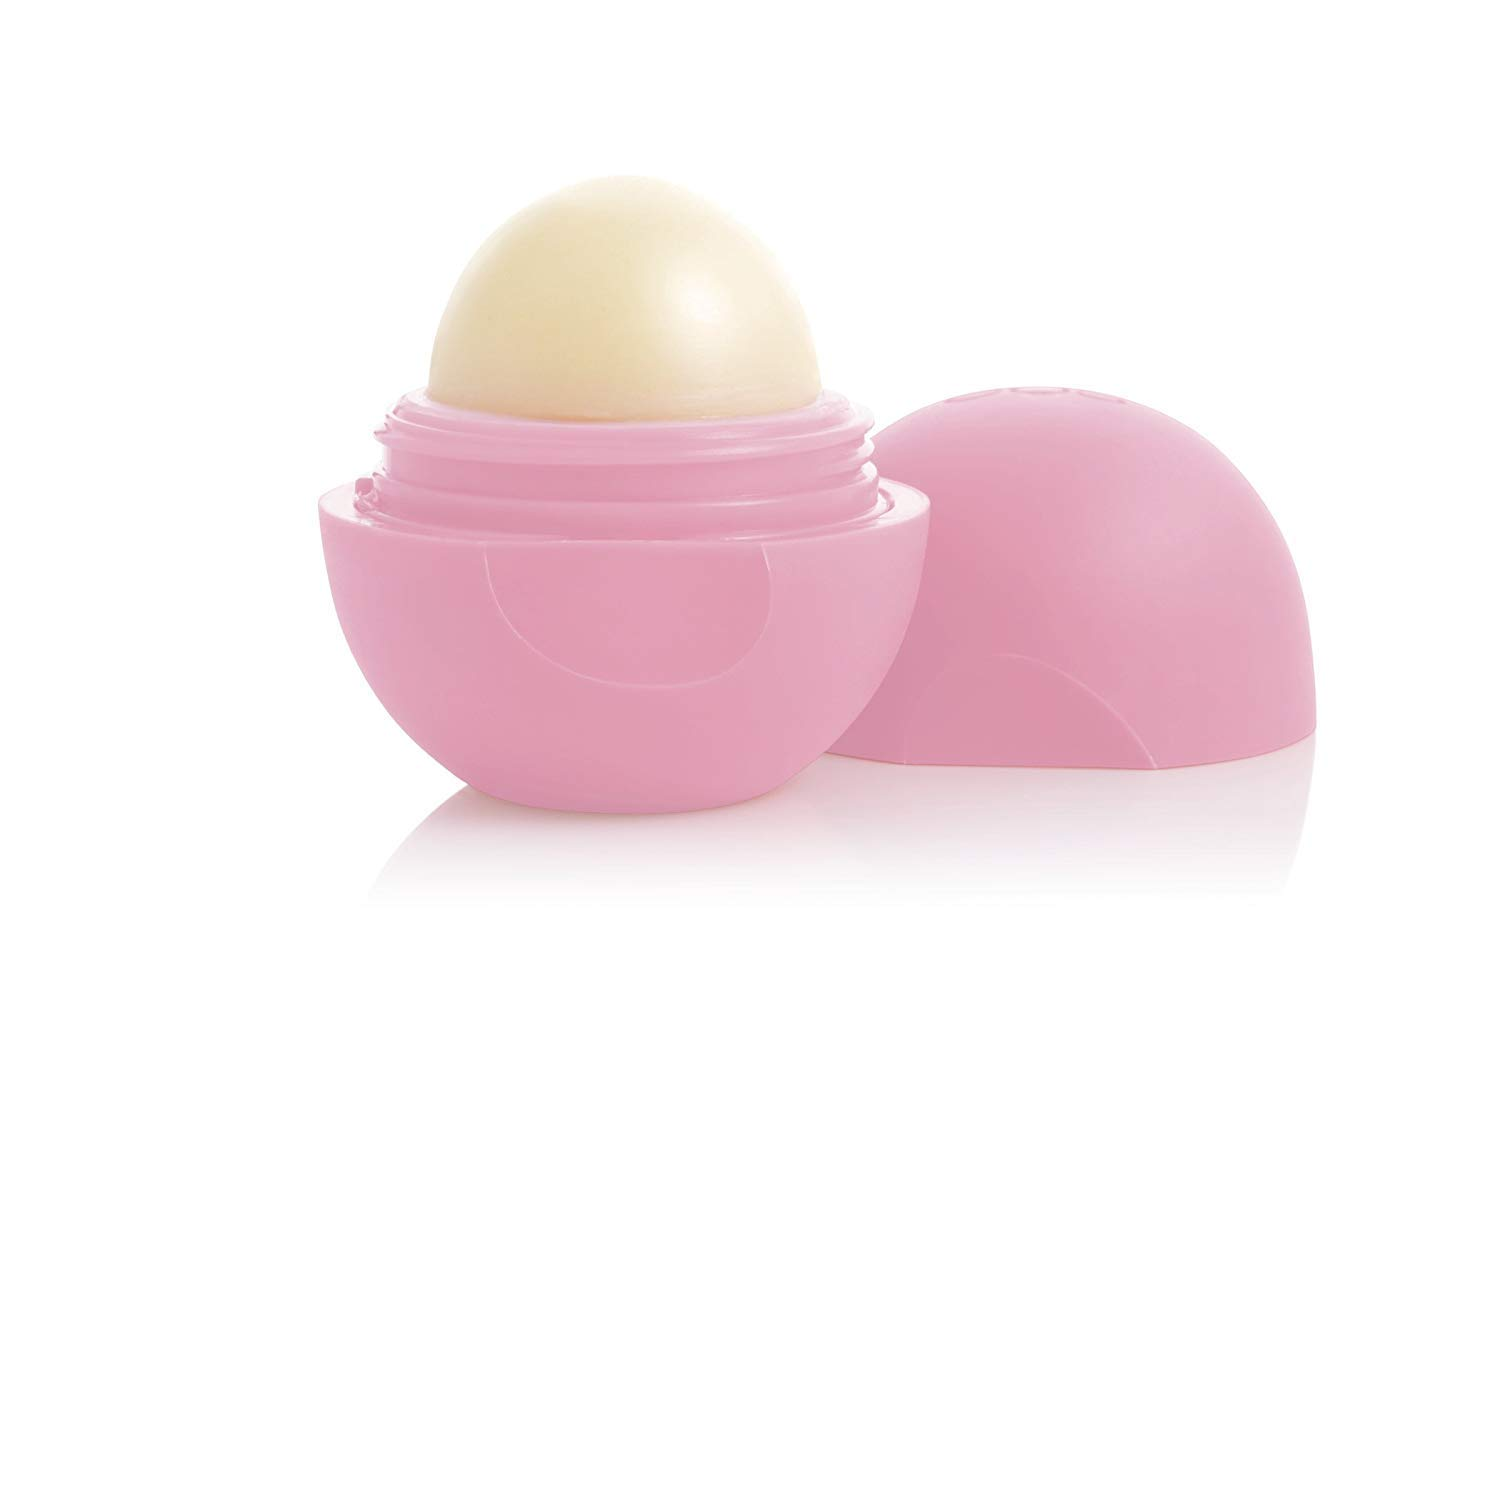 eos Smooth Lip Balm Sphere, Strawberry Sorbet 0.25 oz (Pack of 10) by eos